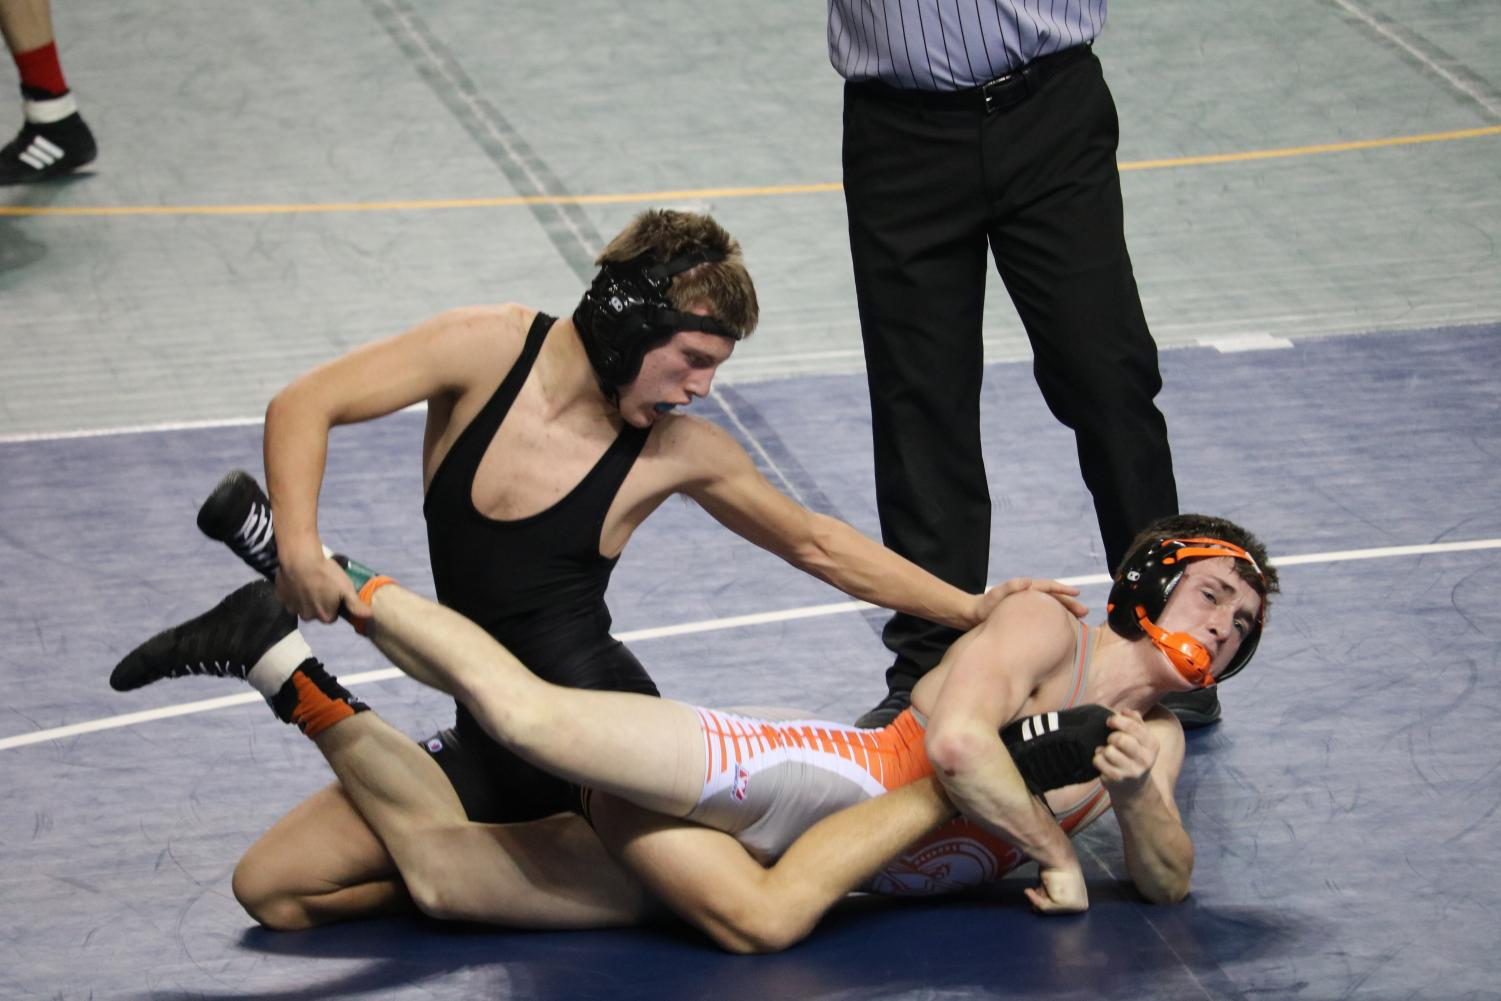 STAY DOWN- Sophomore Steele McLaren pushes his opponent down during his match at the Council Bluffs Classic. S. McLaren ended the night at OA-BCIG with one pin and received a forfeit.